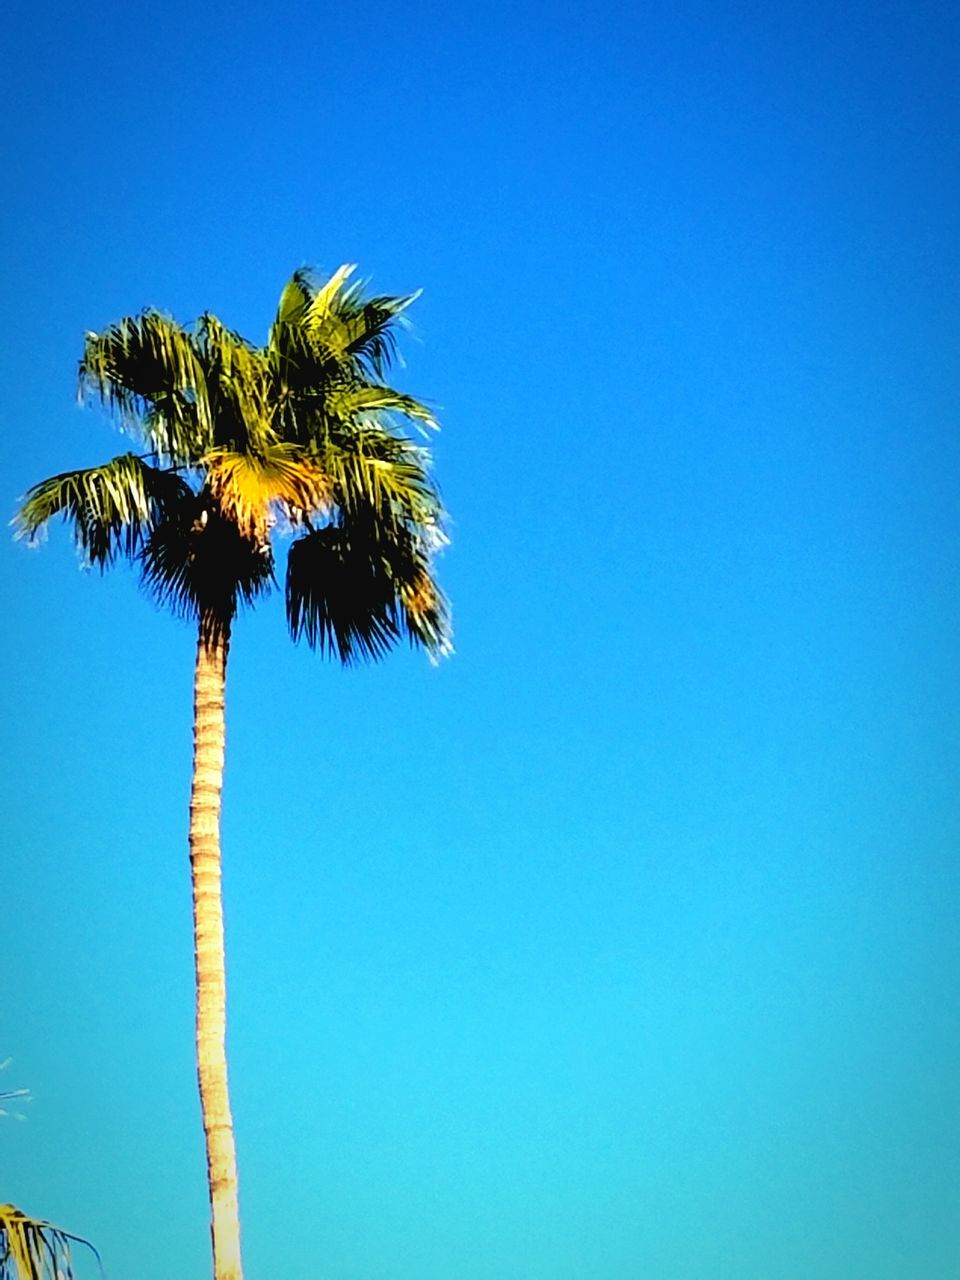 palm tree, blue, clear sky, tree, growth, low angle view, copy space, day, outdoors, nature, no people, beauty in nature, sky